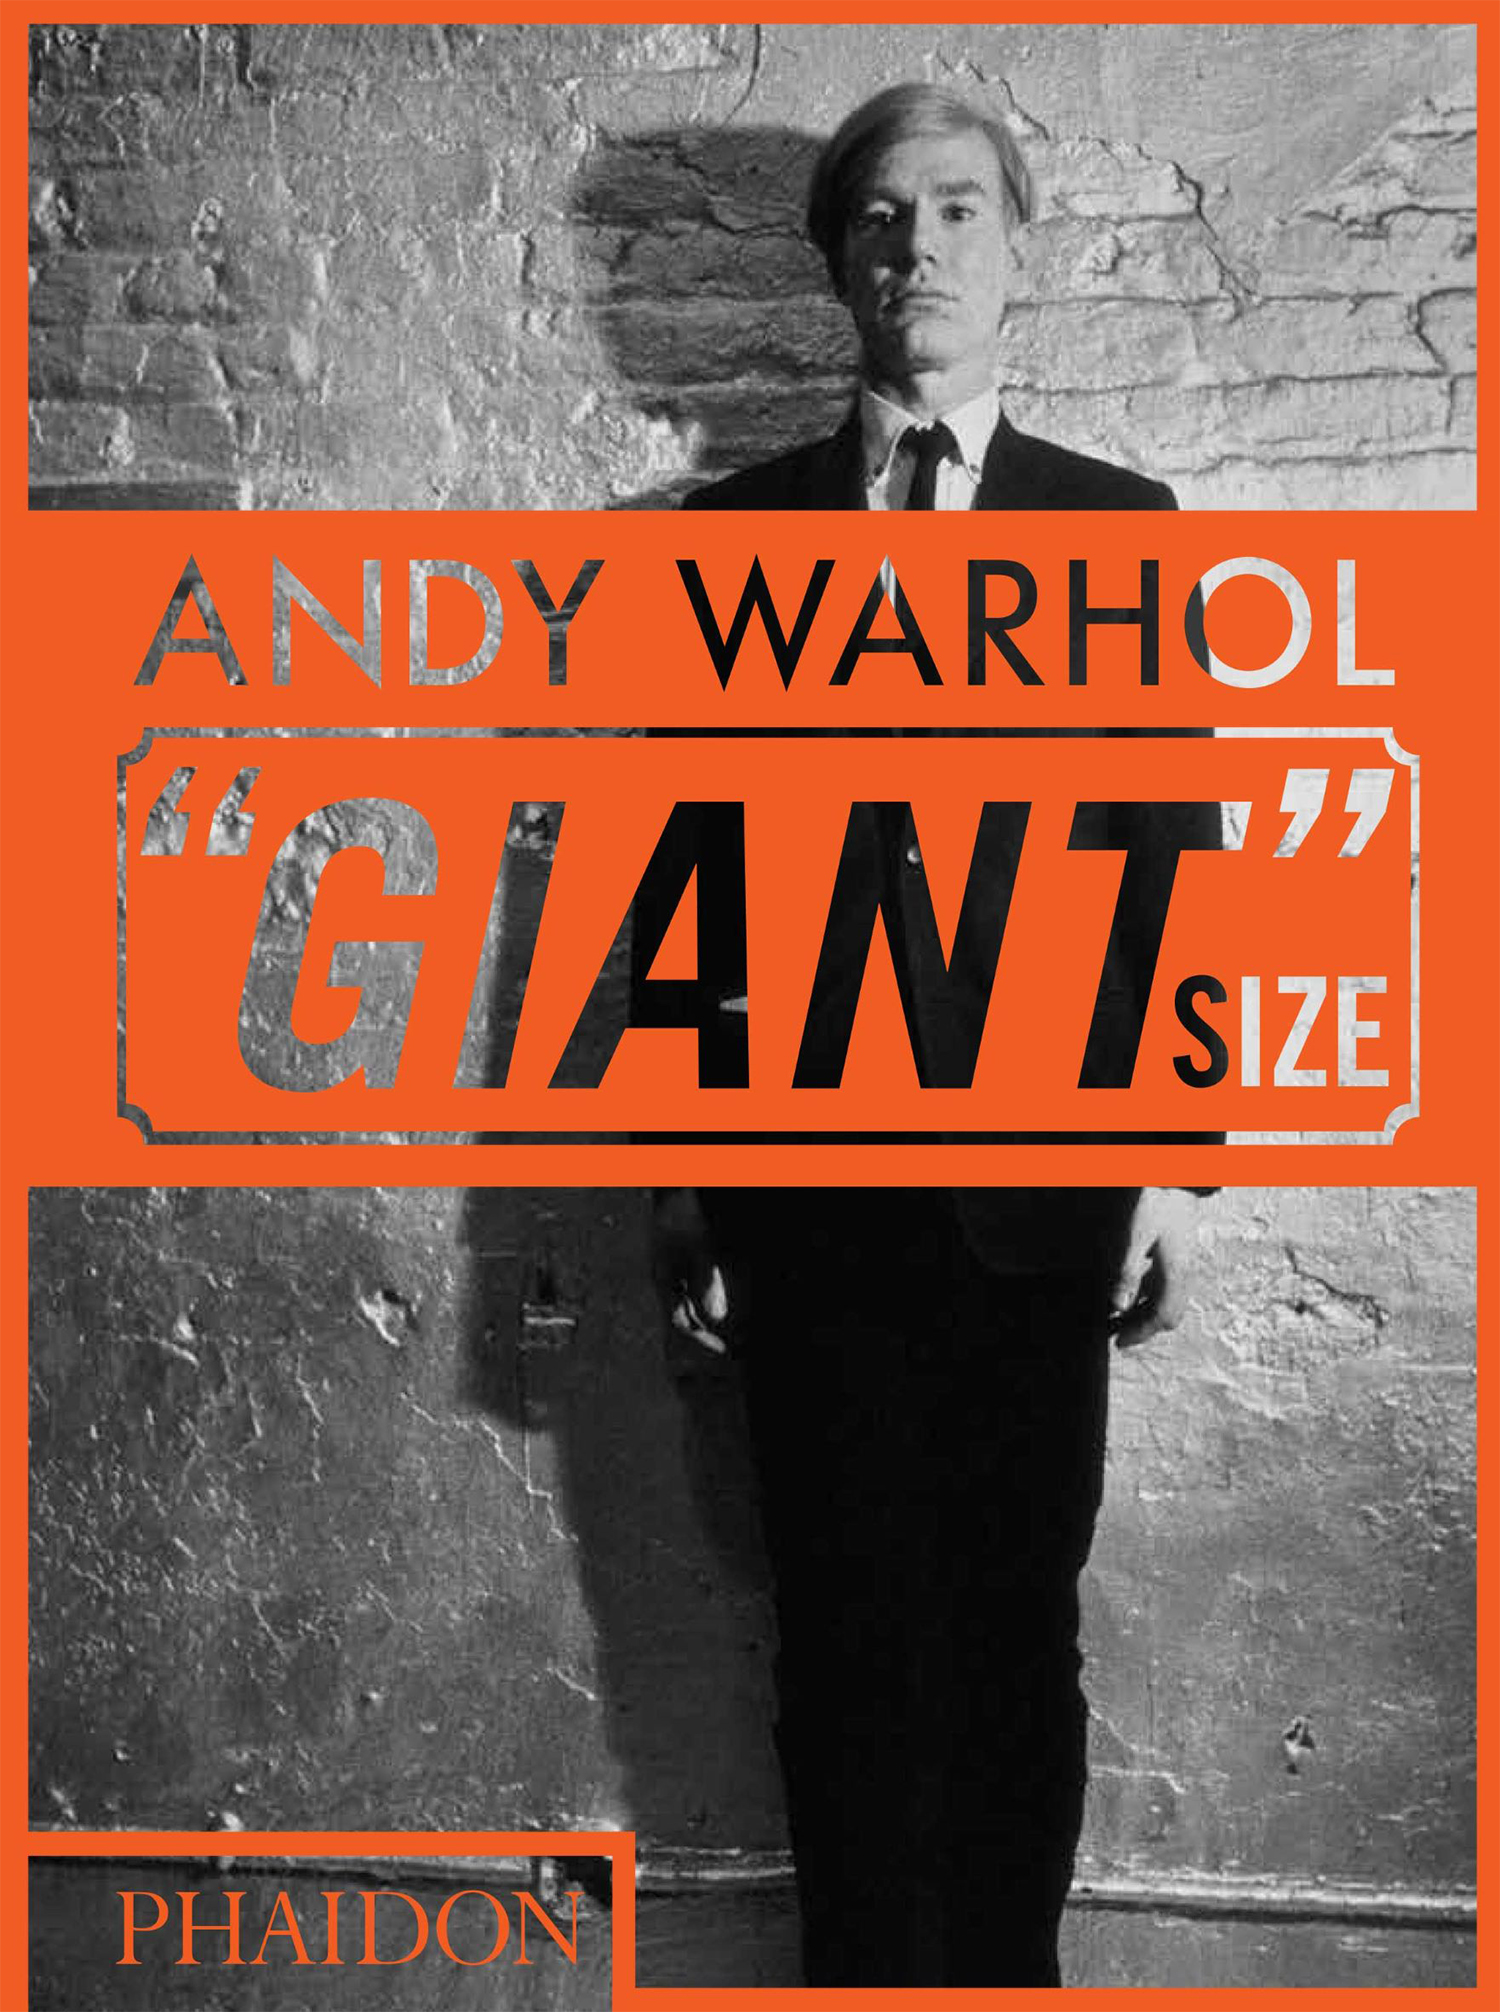 """Buch """"Andy Warhol: Giant Size"""" Kleinformat"""